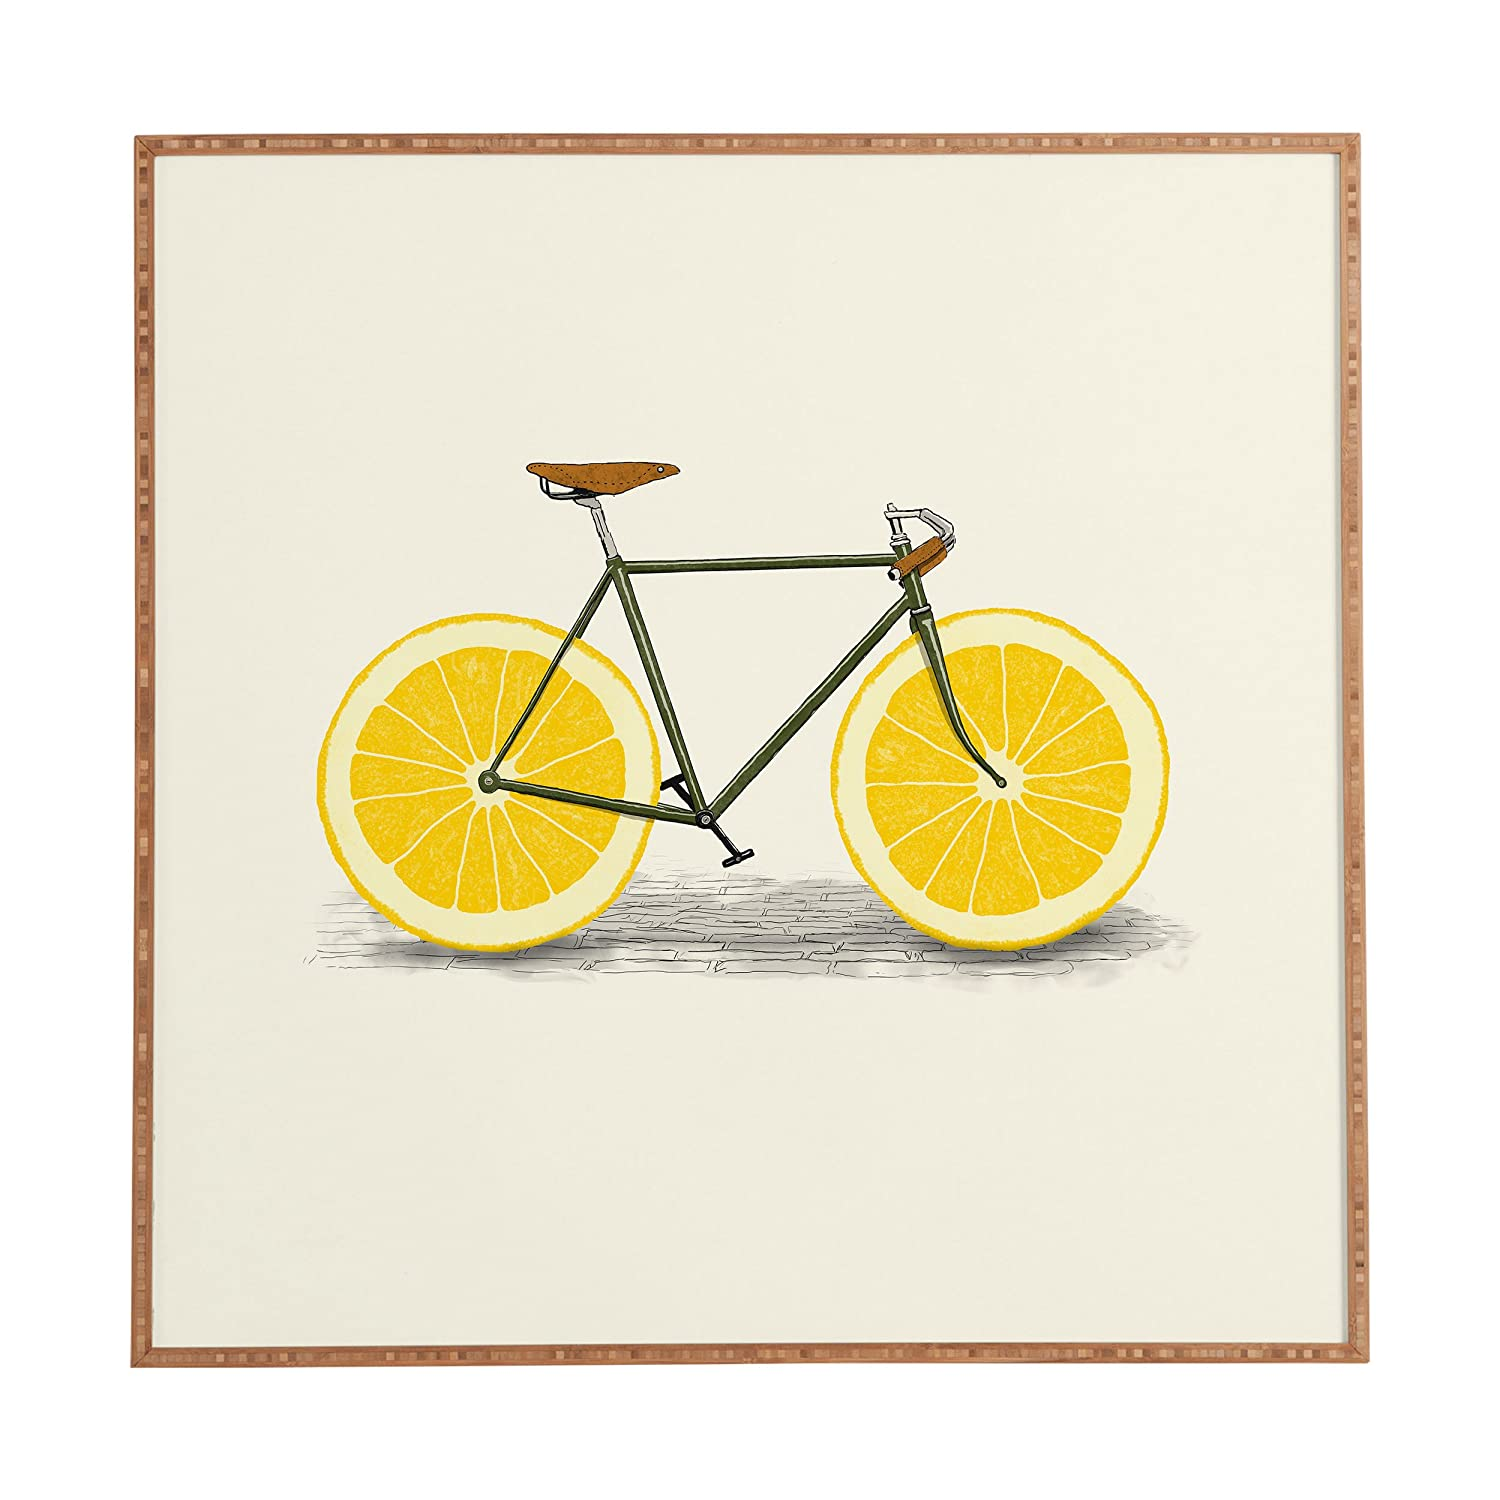 "Deny Designs Florent Bodart, Zest I, Framed Wall Art, Small, 12""x 12"""